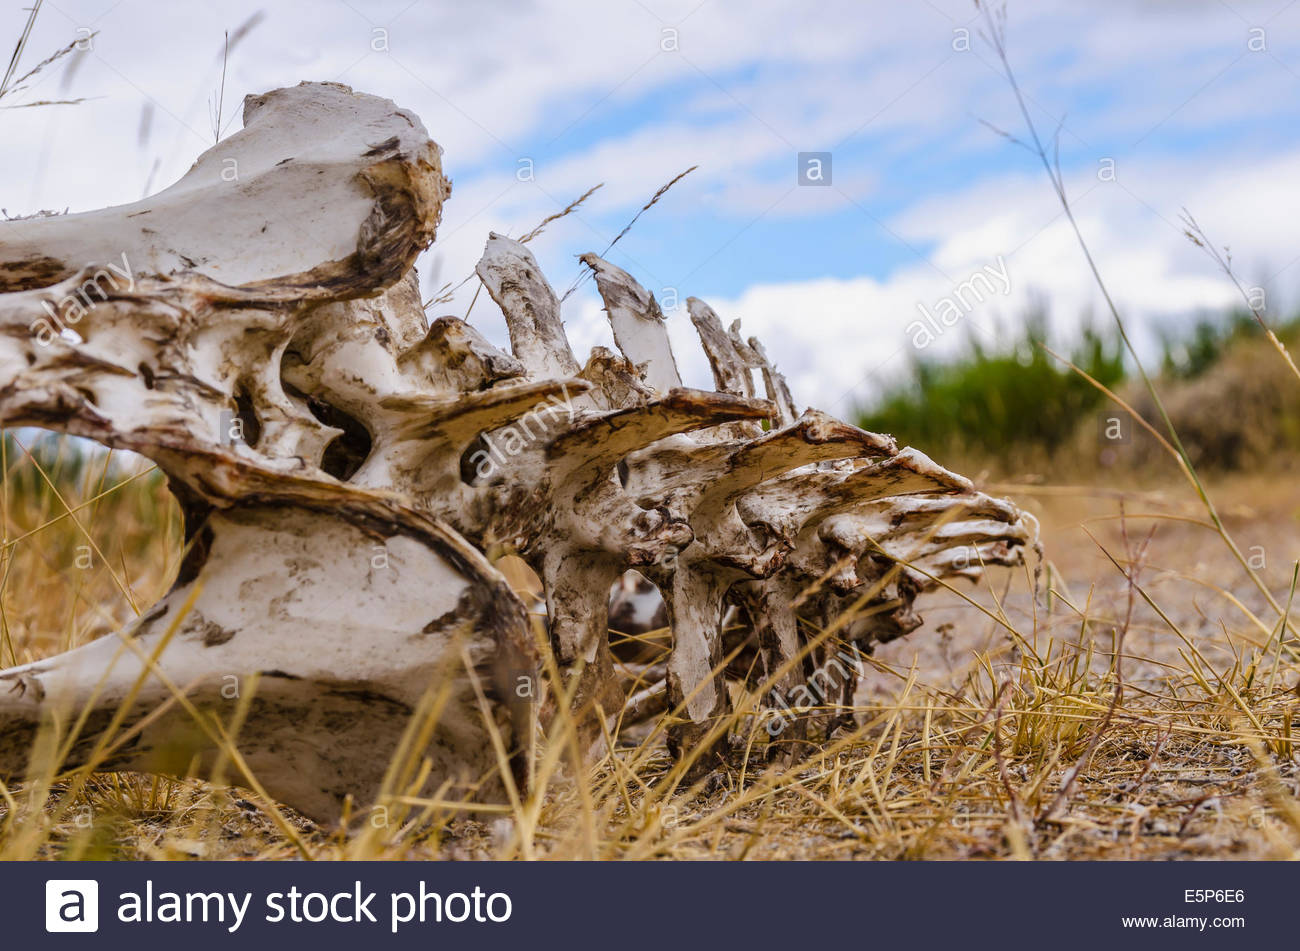 Skeleton of a vertebrate animal lying on the ground. Bones with rotten meat. - Stock Image